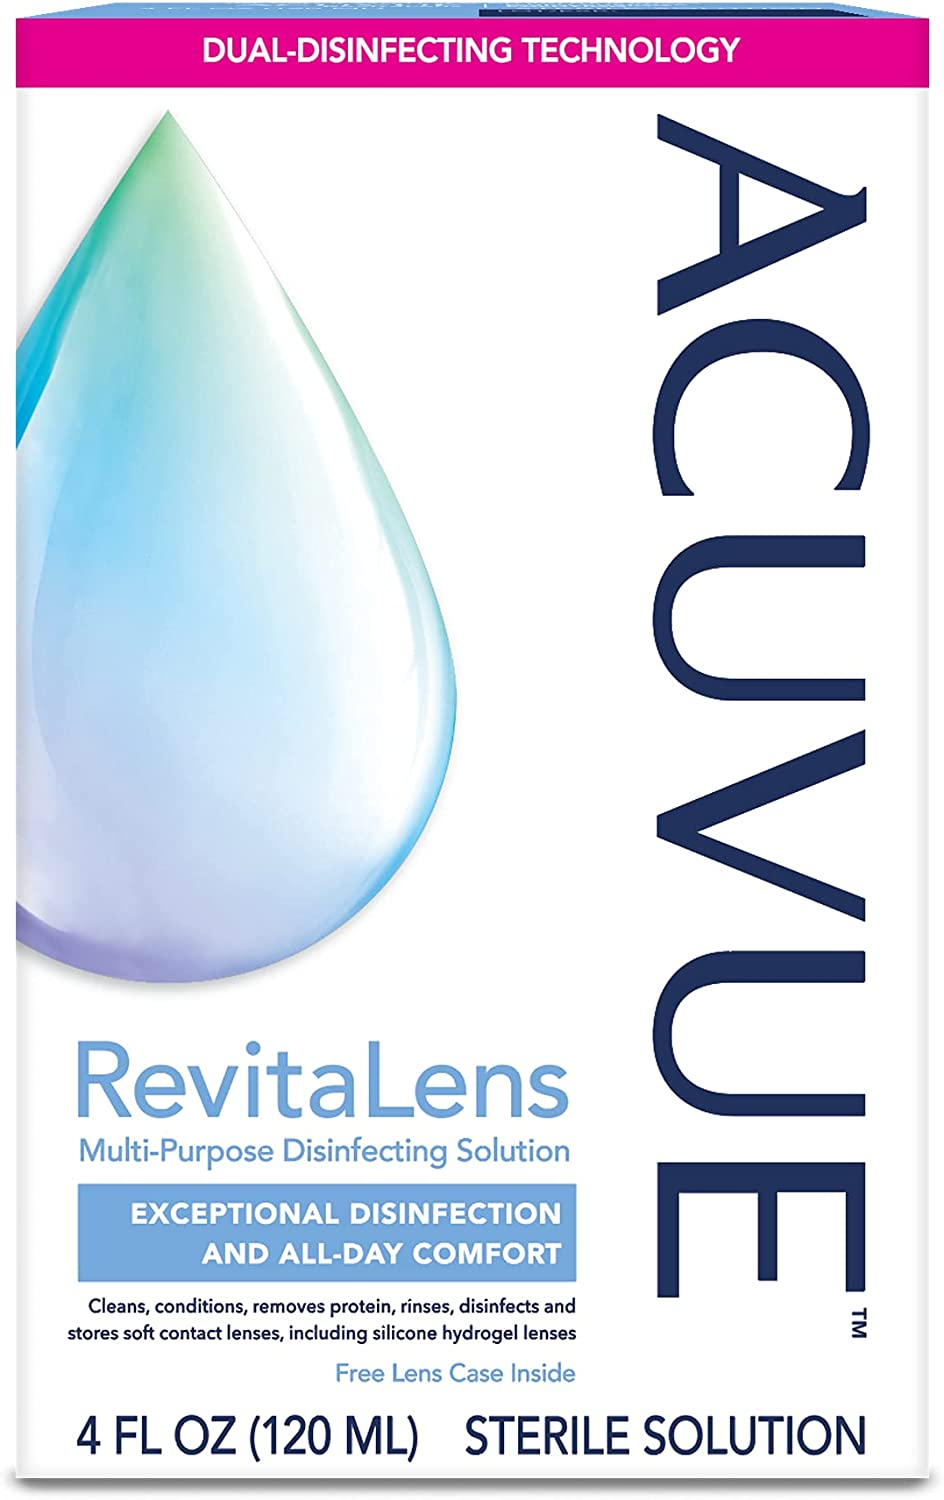 ACUVUE® RevitaLens Multi-Purpose Disinfecting oz. Cheap mail order shopping Boston Mall 4 Solution